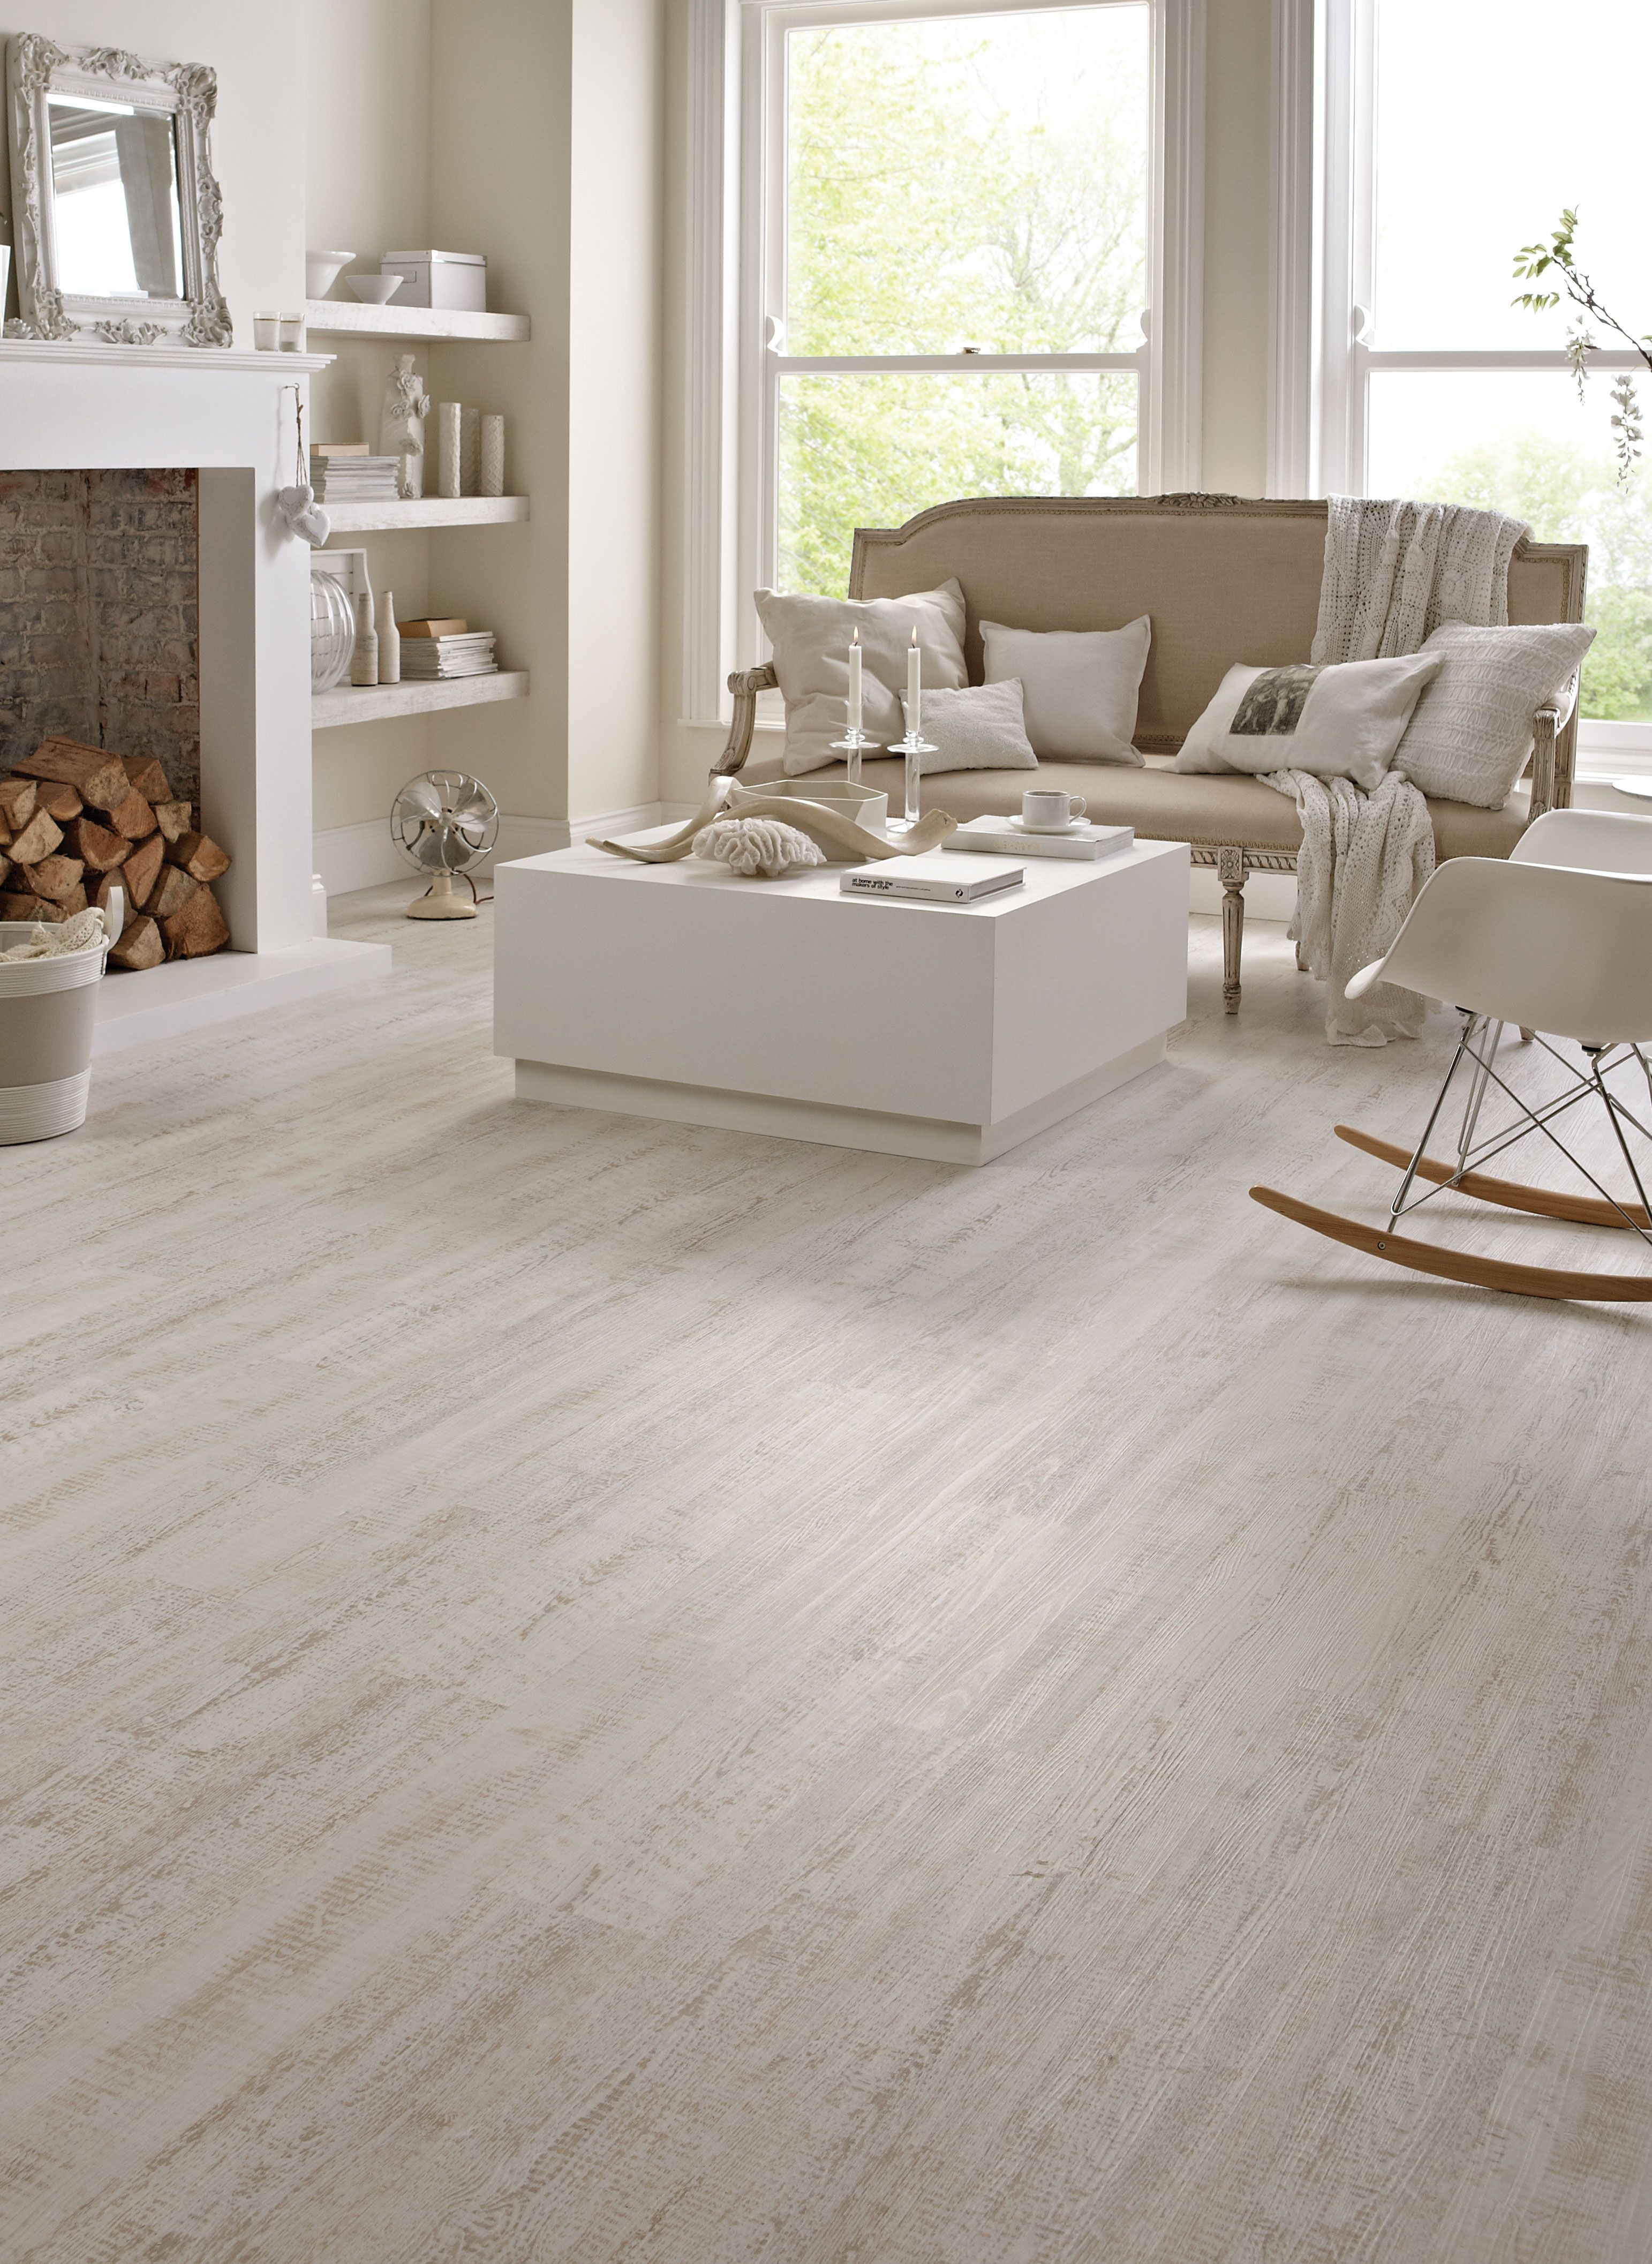 Ark Hardwood Flooring Of Flooring Definition 12 Laminate Flooring for Kitchen Backsplash with Regard to Flooring Definition Karndean Wood Flooring White Painted Oak by Karndeanfloors